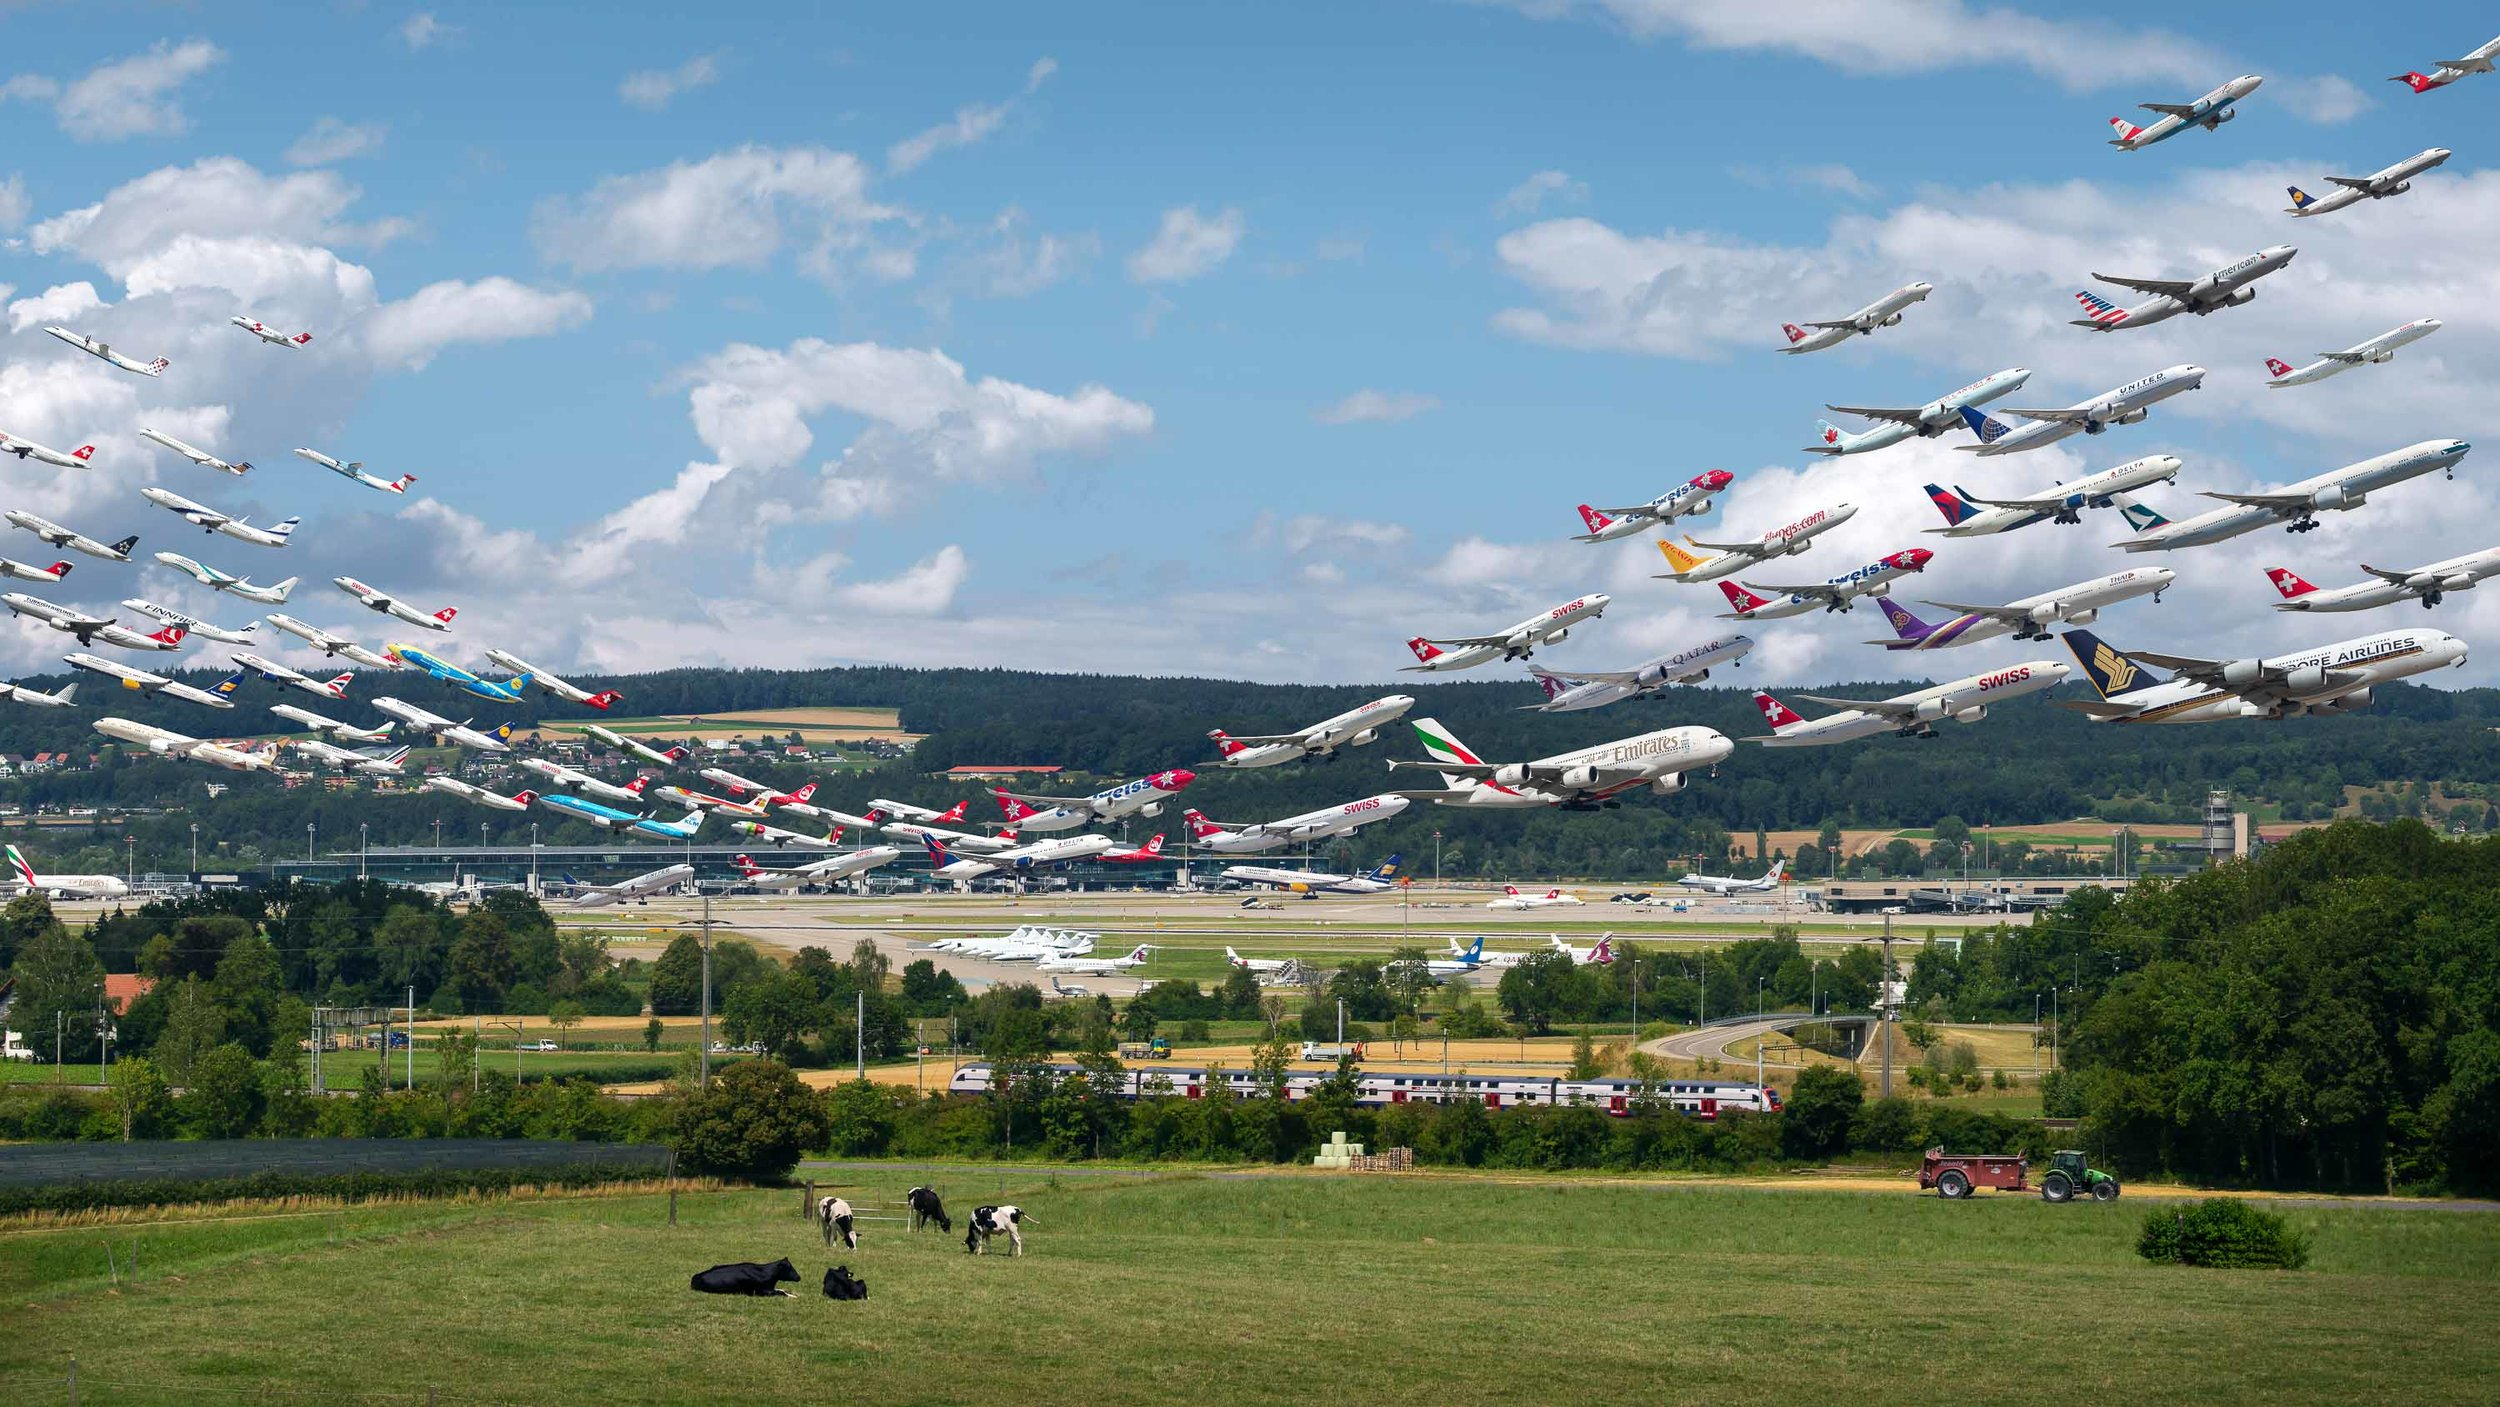 mike-kelley-zurich-multiple-takeoffs.jpg